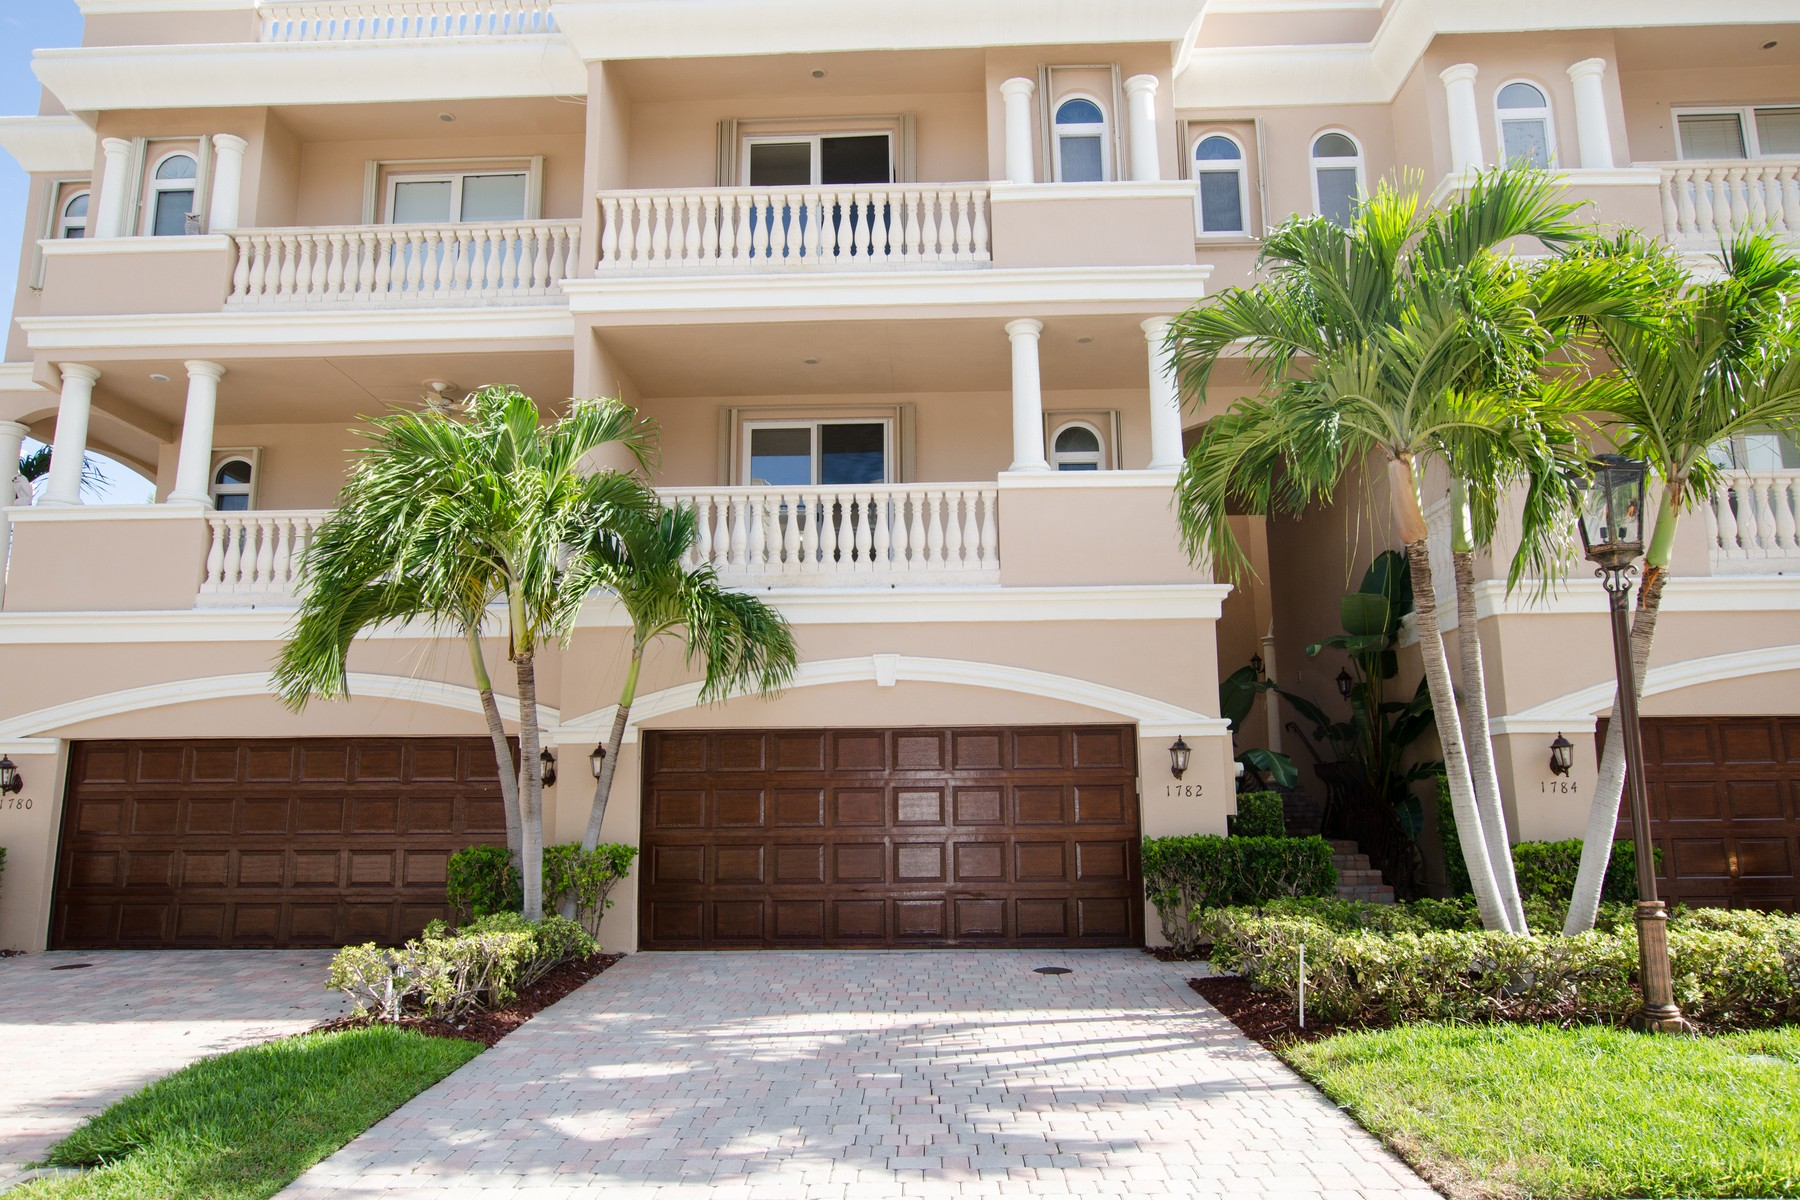 Townhouse for Sale at 1782 Bay Dr, Pompano, FL 33062 1782 Bay Dr Pompano Beach, Florida 33062 United States